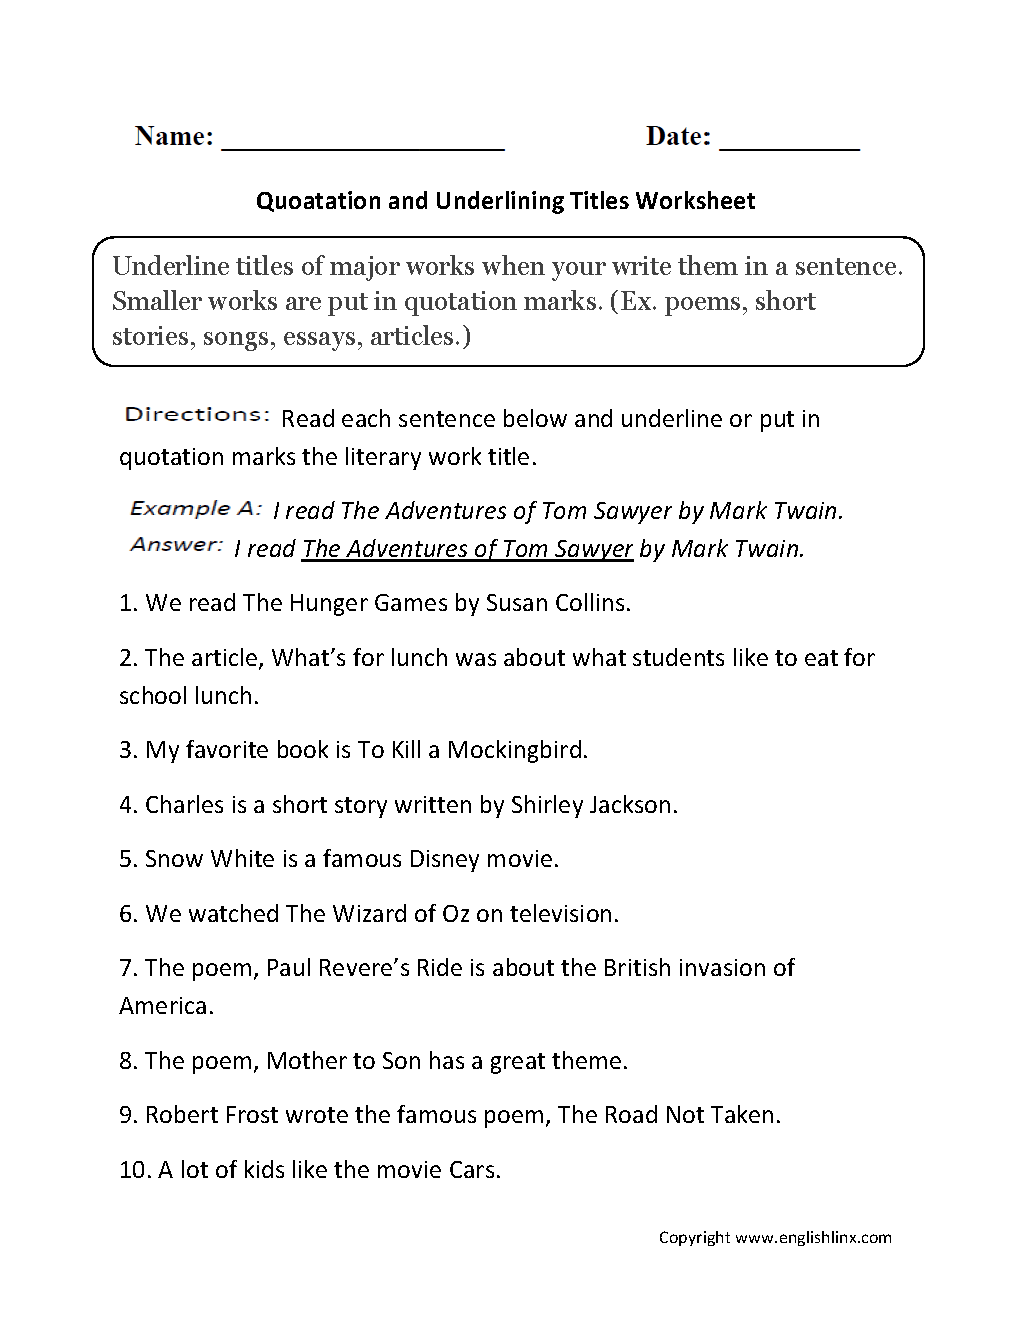 Workbooks poems worksheets : Grammar Mechanics Worksheets | Italics and Underlining Worksheets